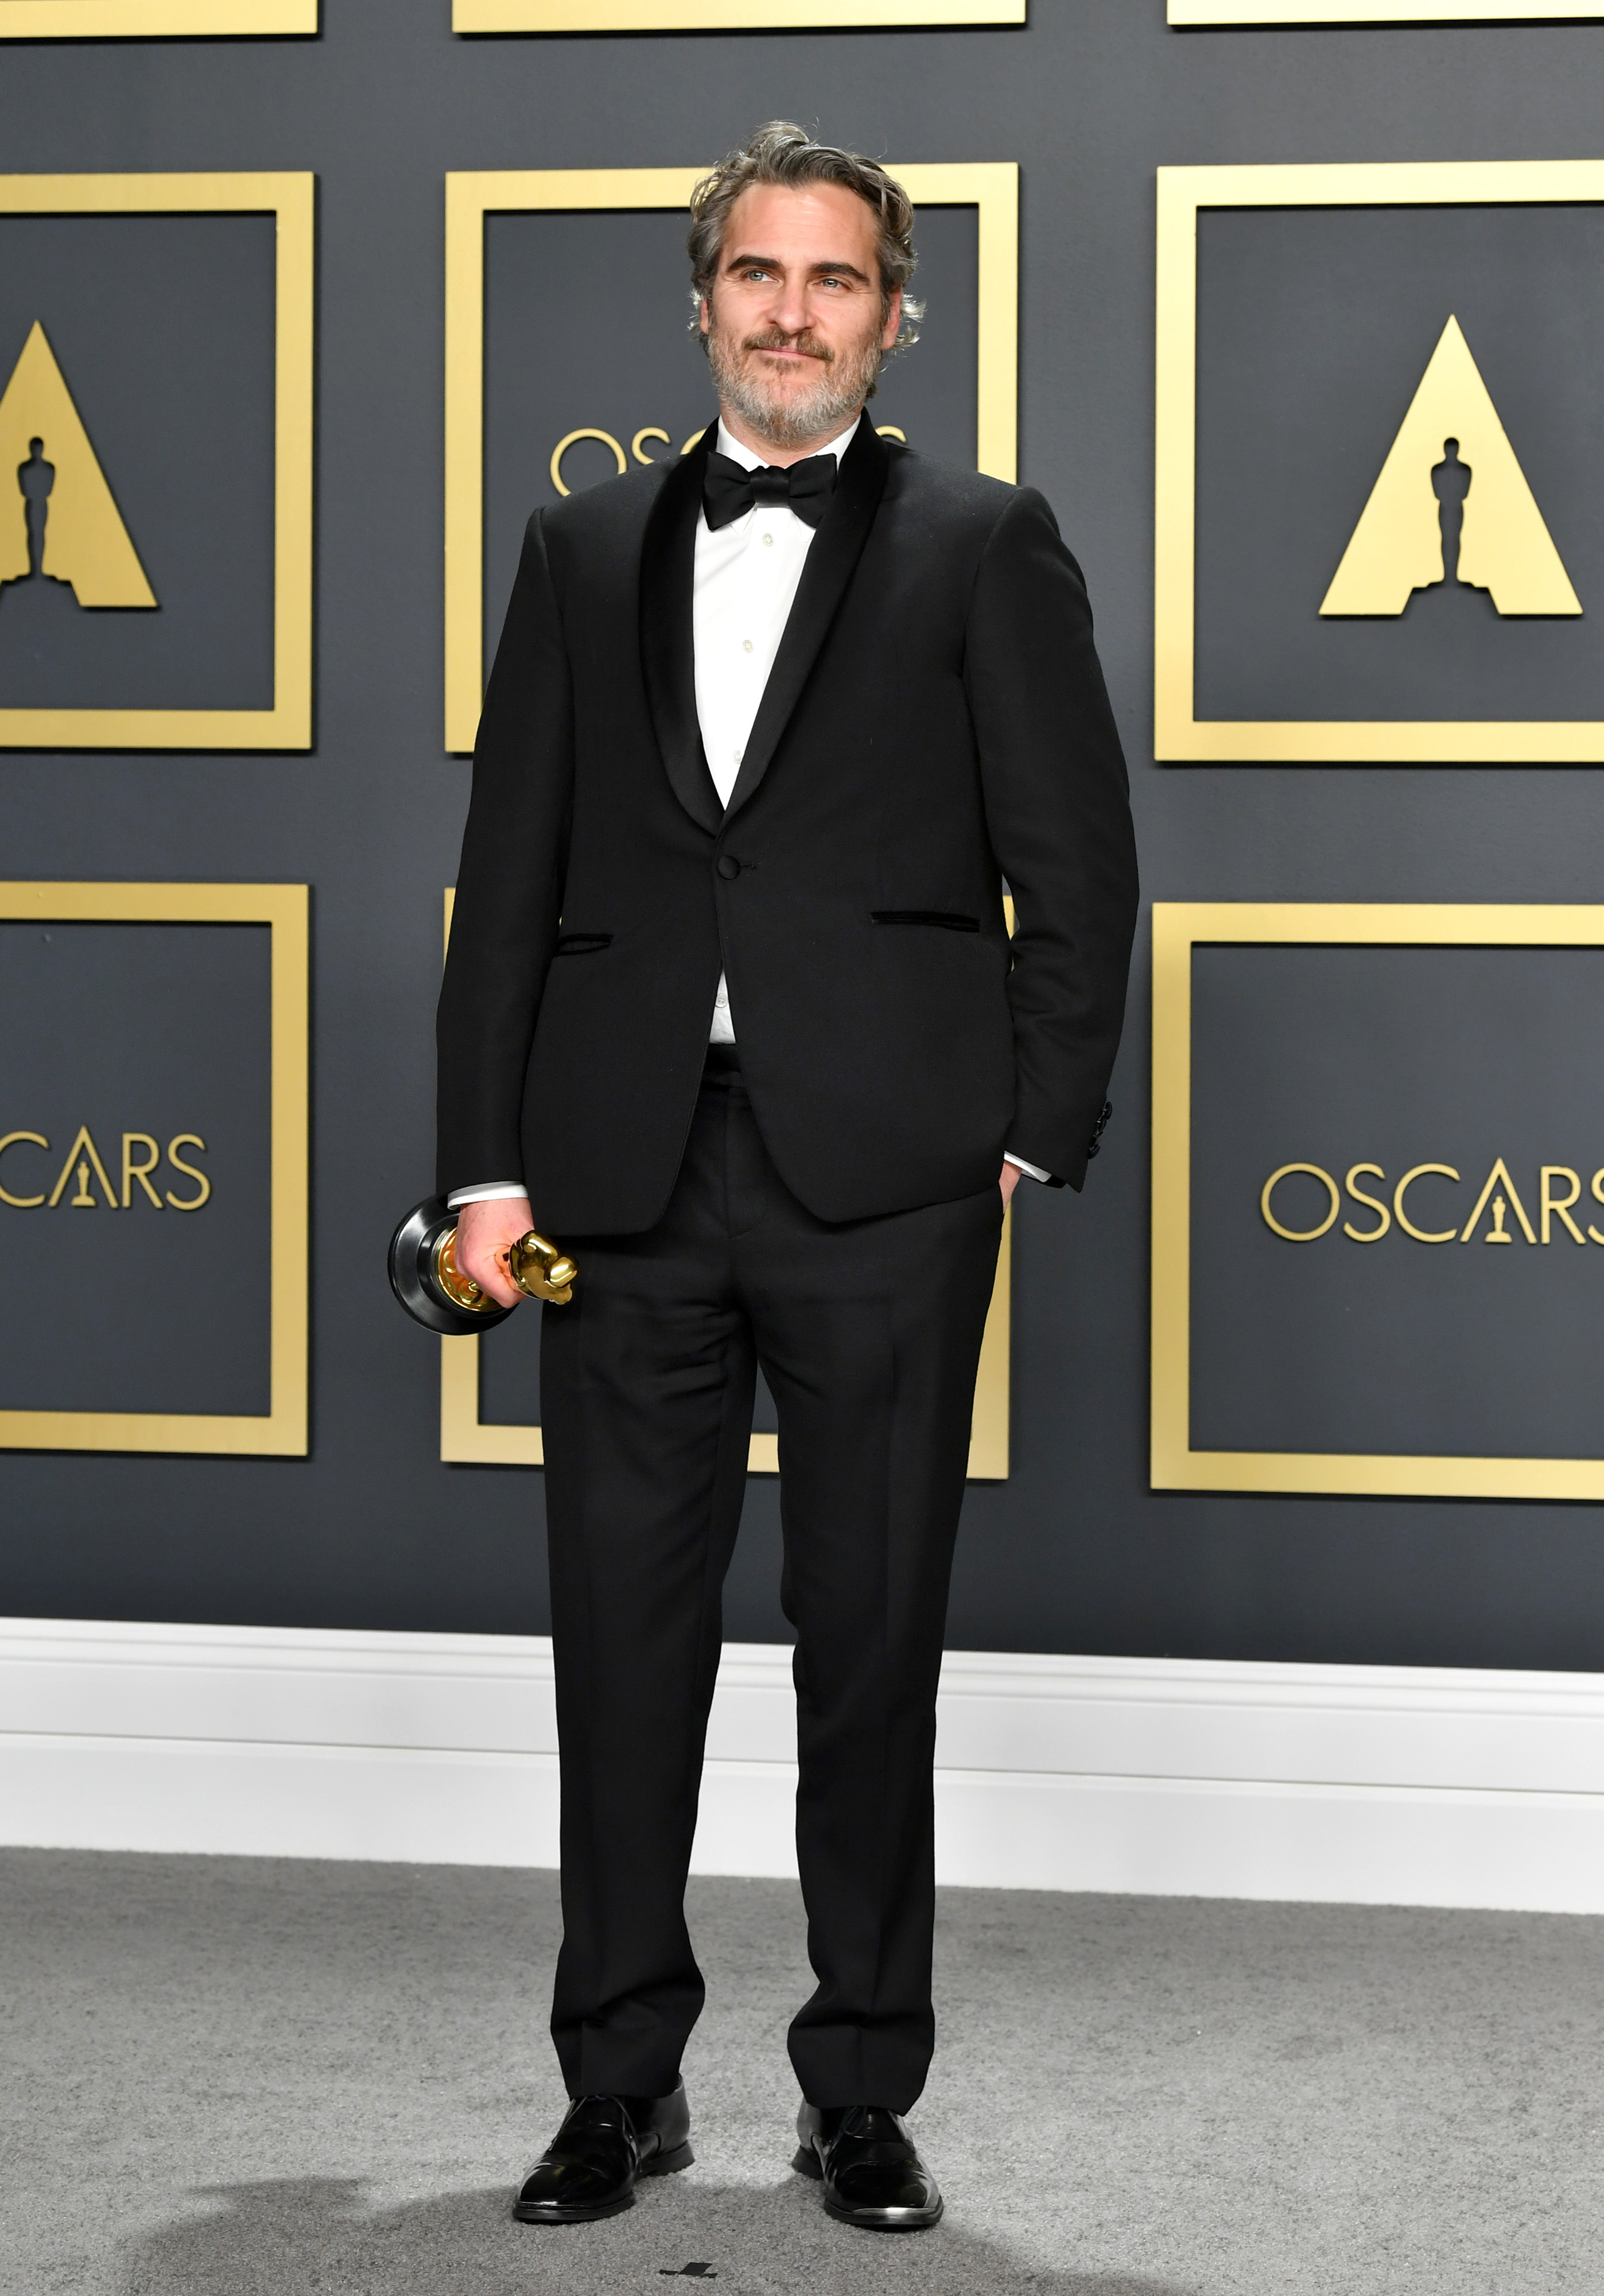 """Joaquin Phoenix, winner of the Actor in a Leading Role award for """"Joker,"""" poses in the press room during the 92nd Annual Academy Awards at Hollywood and Highland on February 09, 2020 in Hollywood, California. (Photo by Amy Sussman/Getty Images)"""